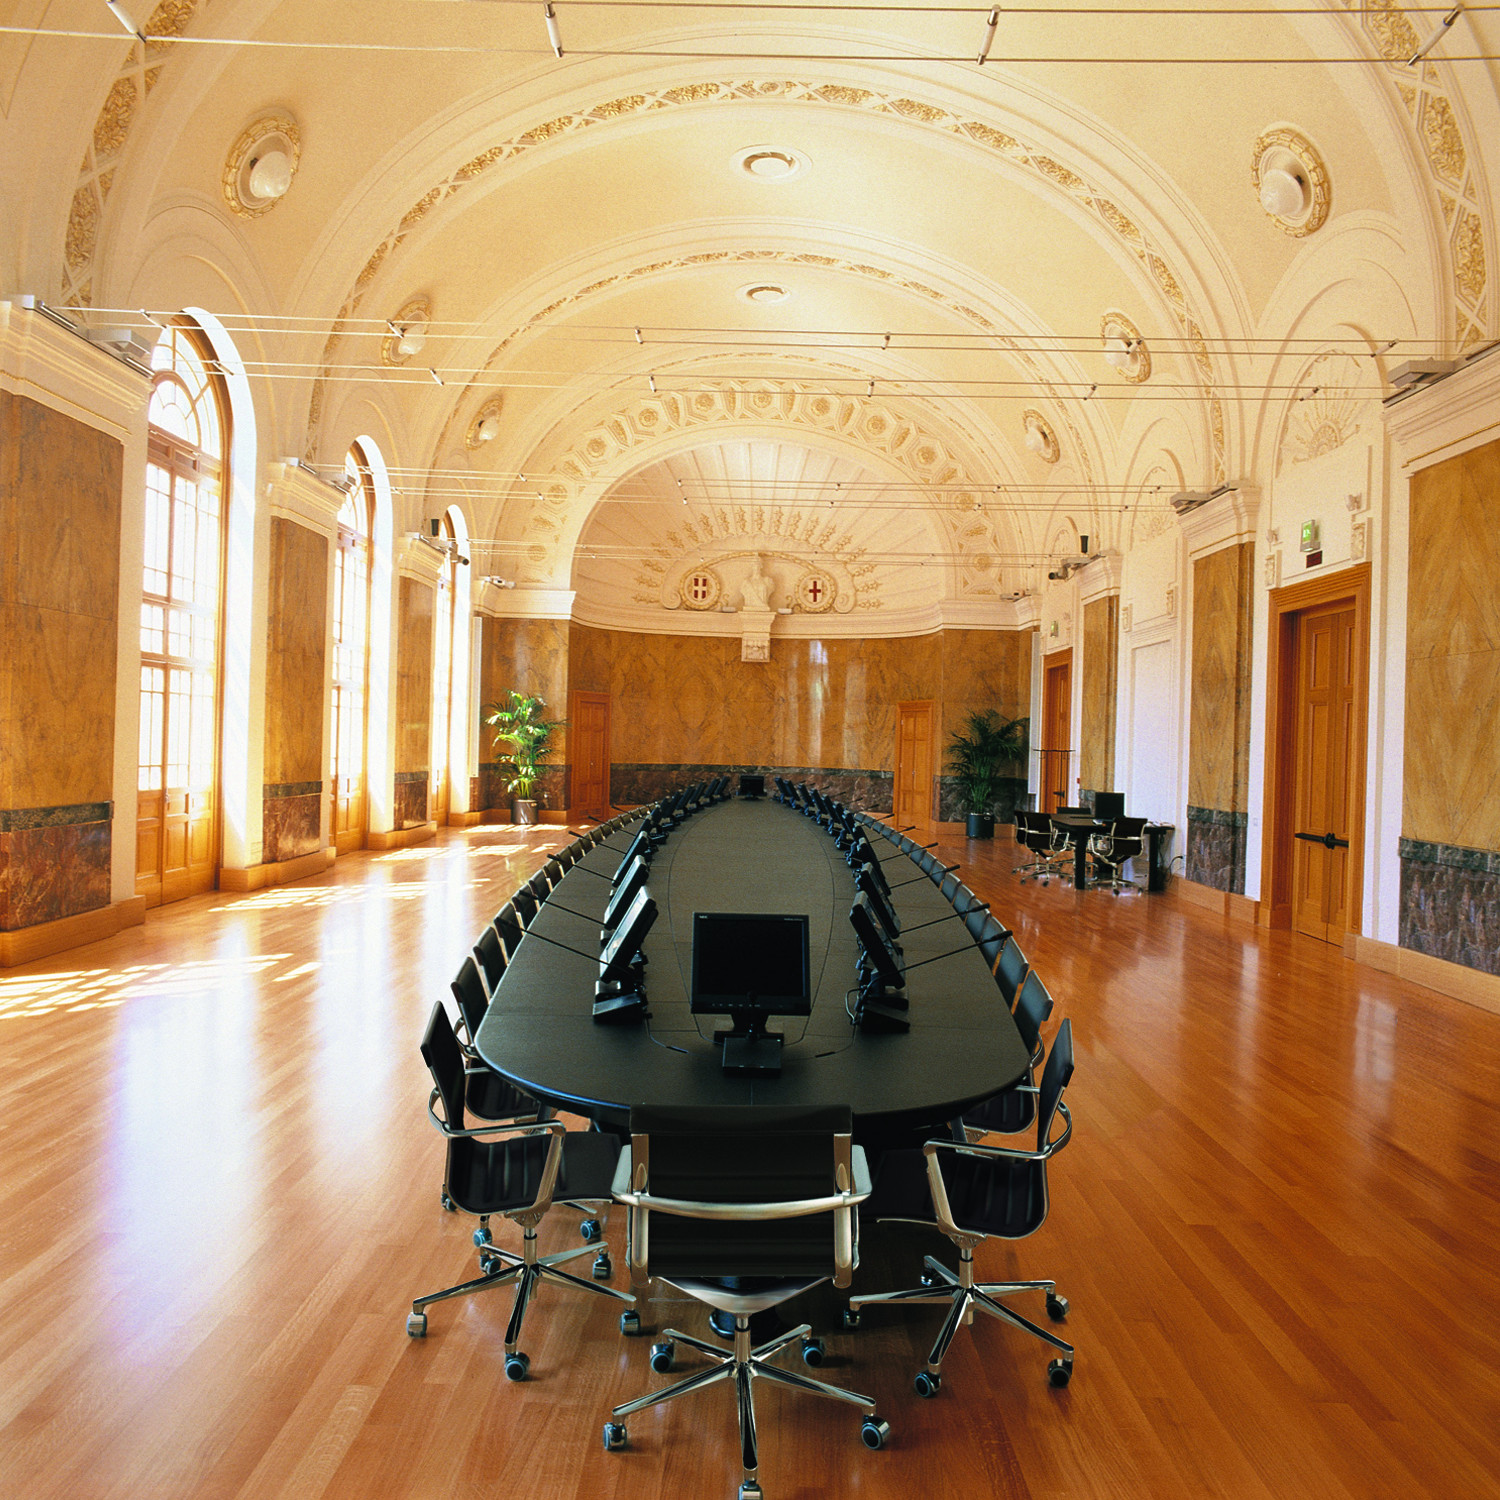 ICF Spa Executive Conference Table